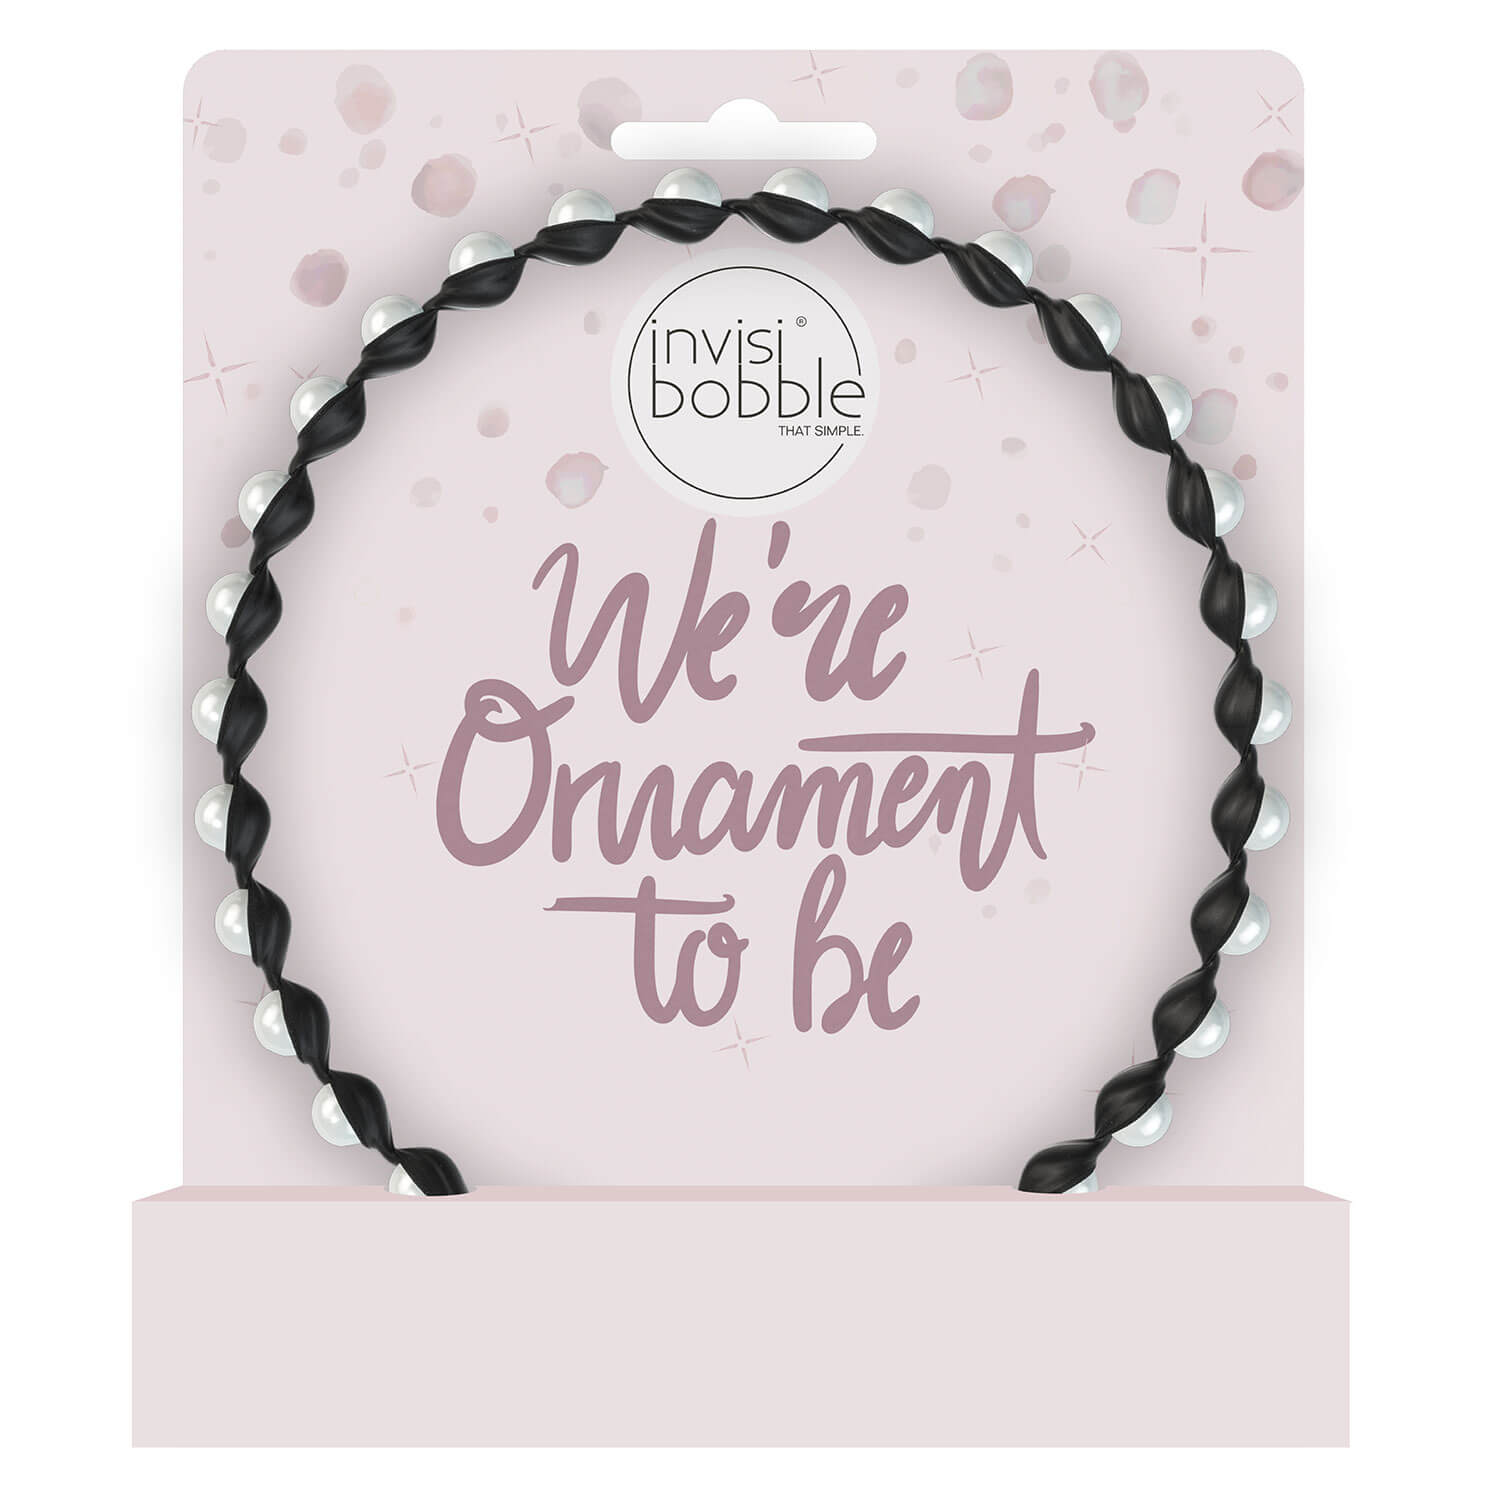 invisibobble HAIRHALO - We're Ornament to be